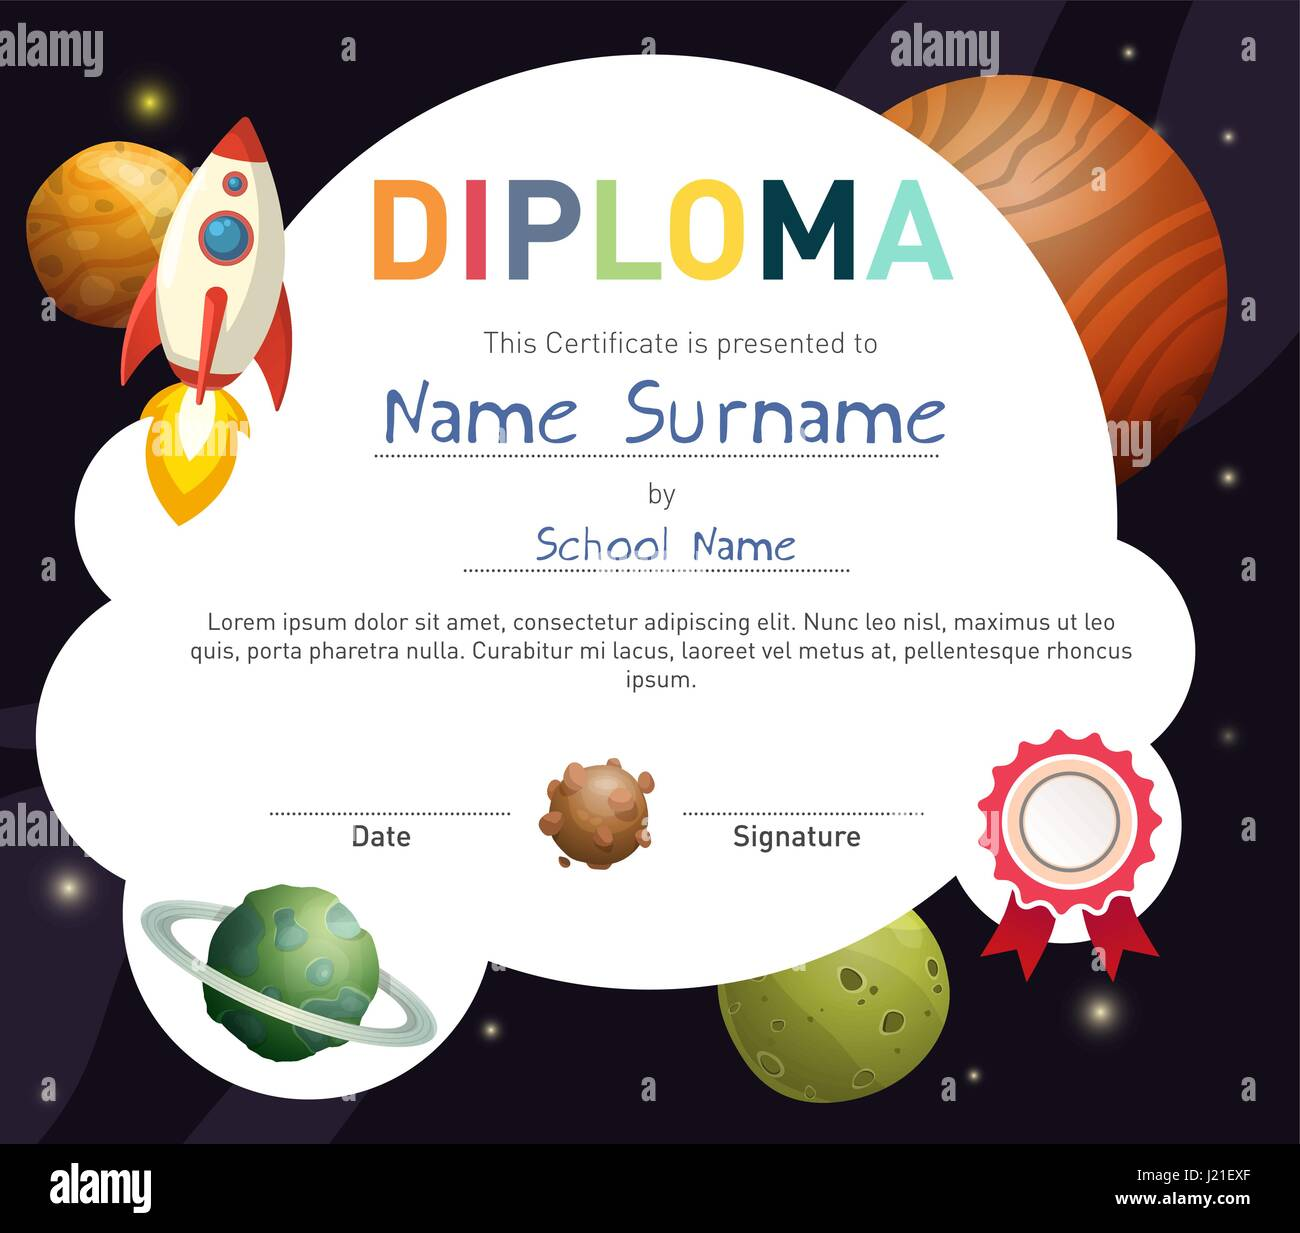 Science kids diploma template Stock Vector Art ...